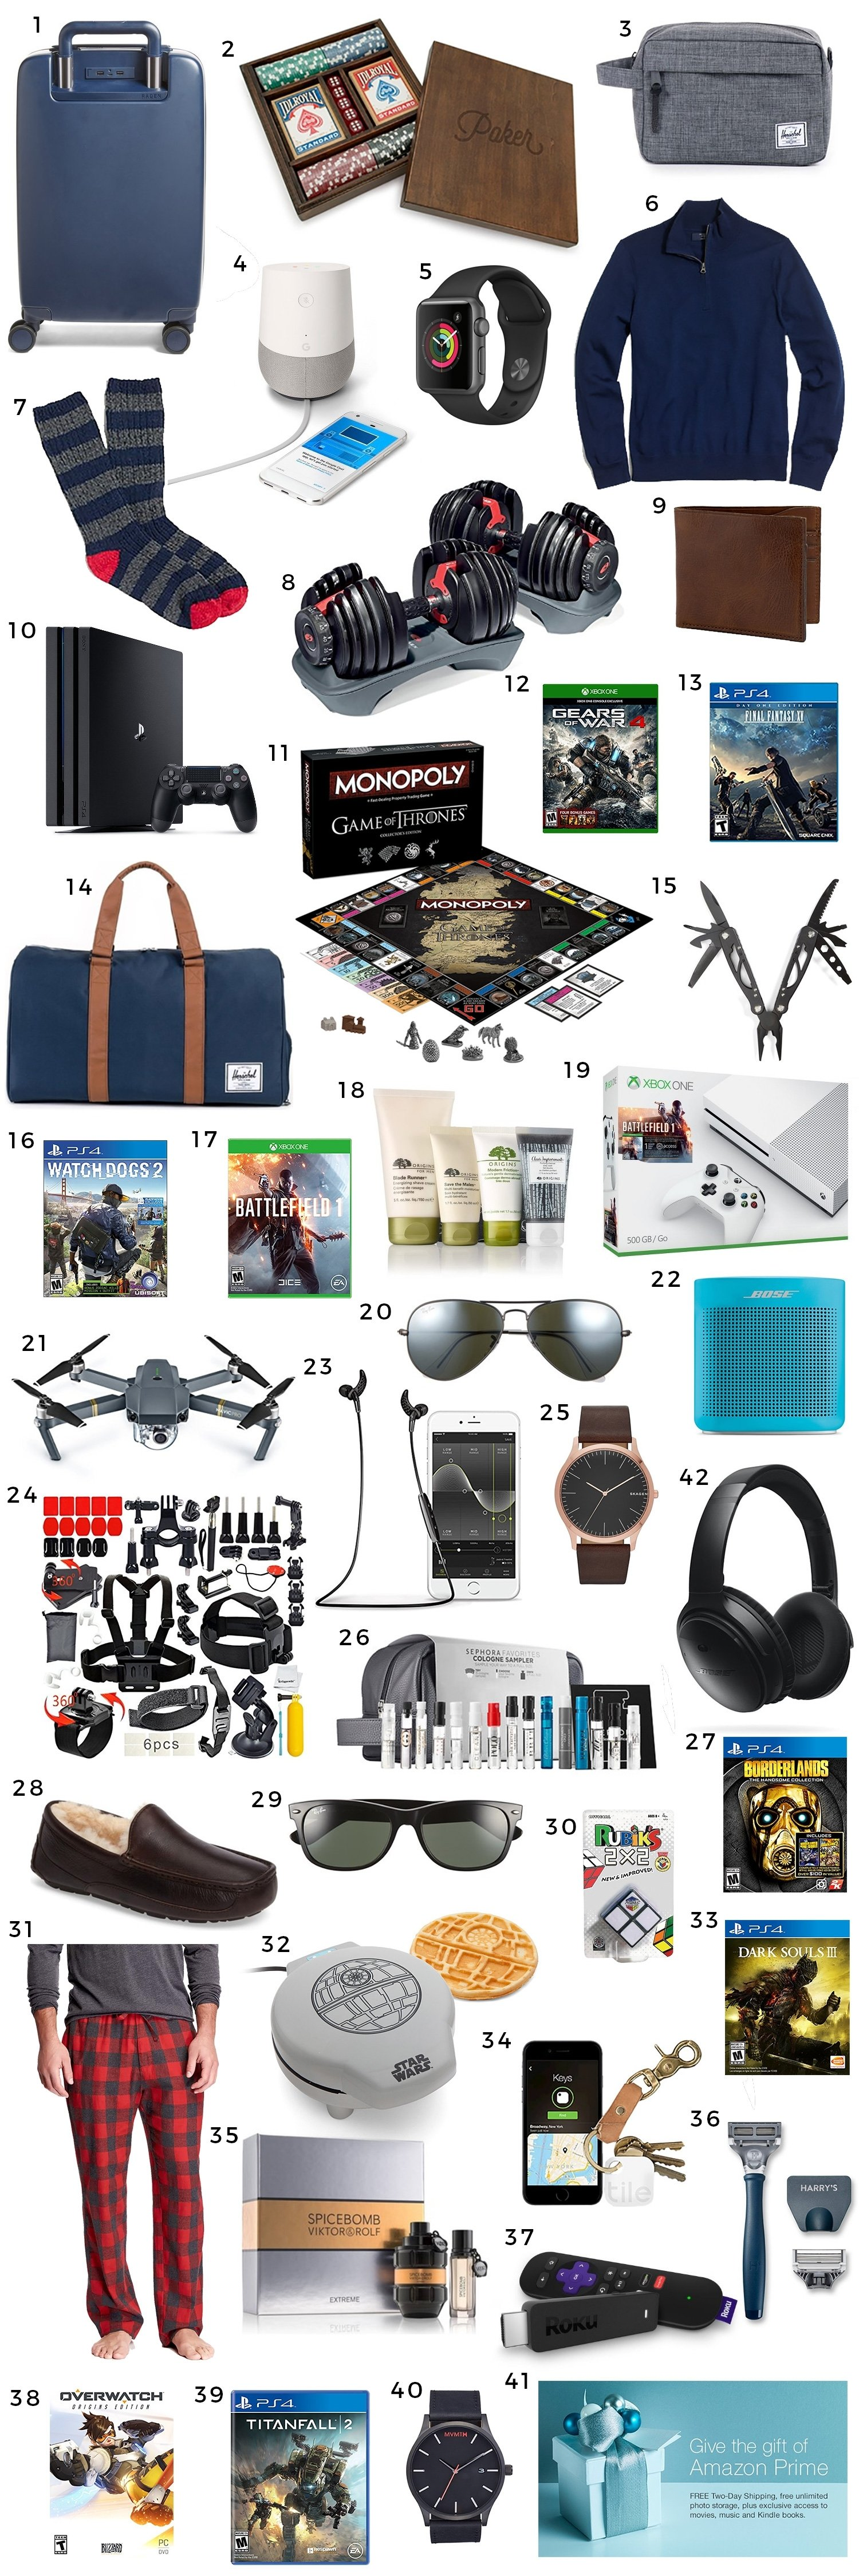 10 Pretty Christmas List Ideas For Guys creative design gift ideas for men manificent decoration list of 2020